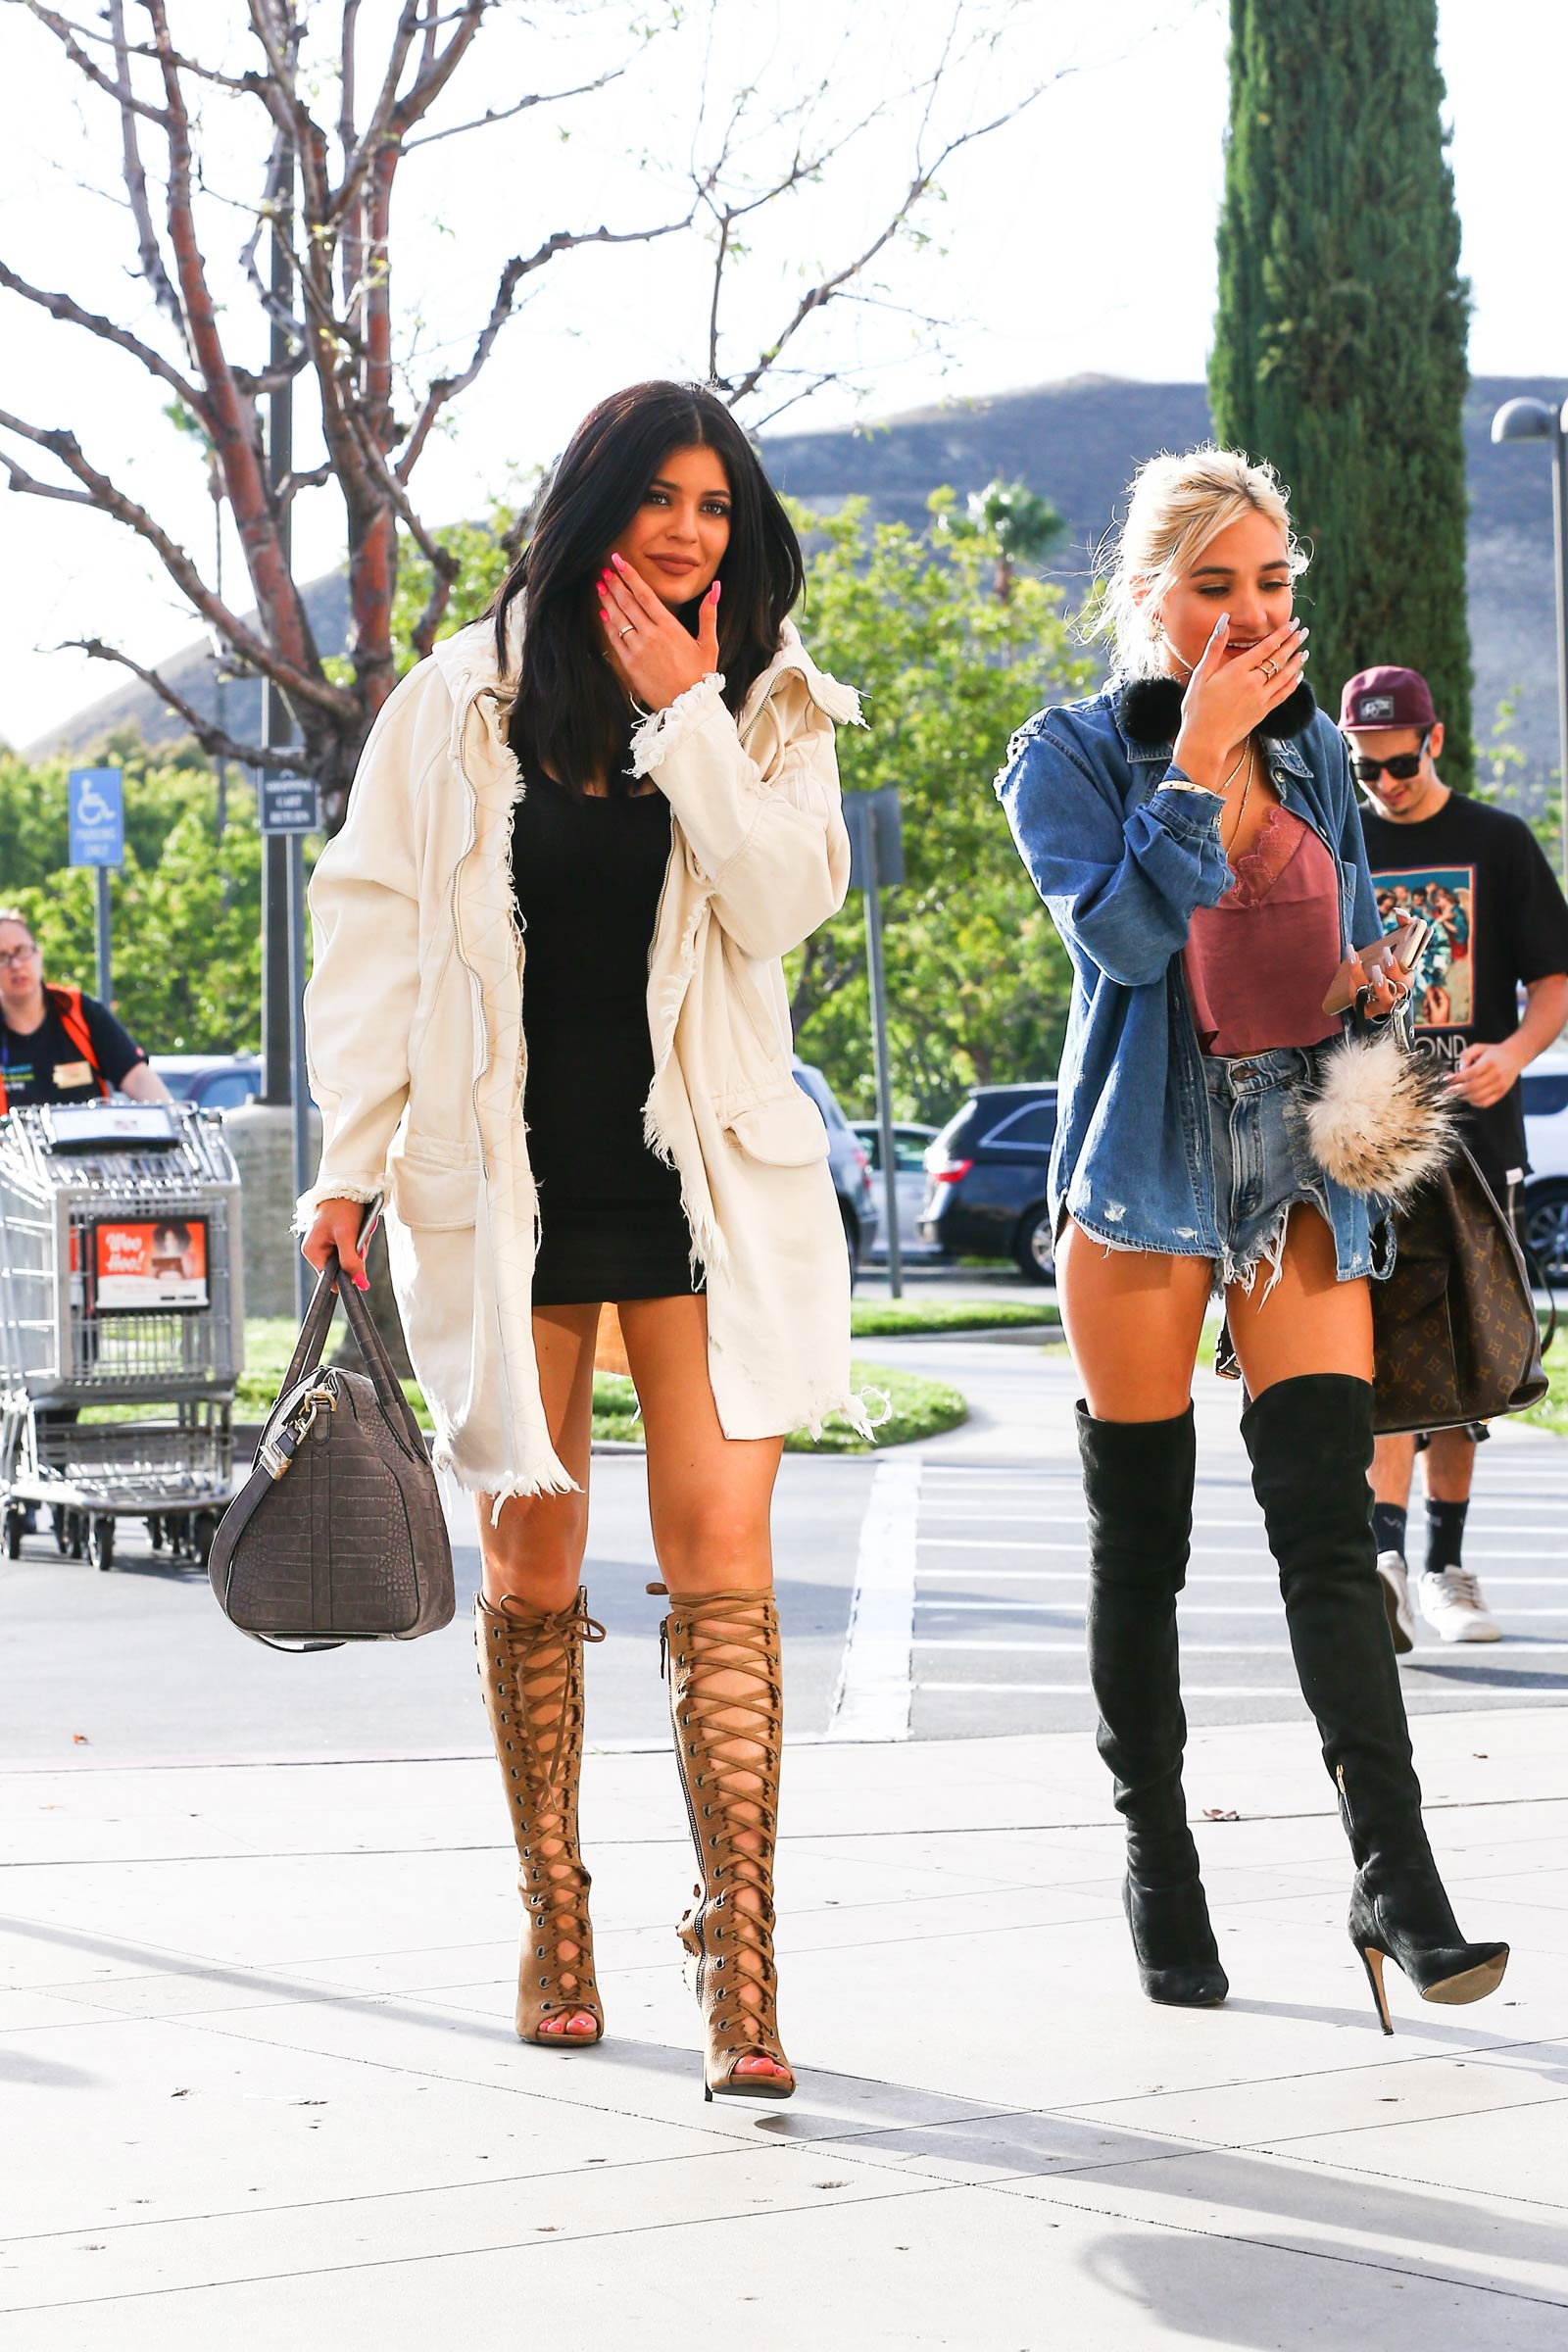 Kylie Jenner and Pia Mia Perez out in Calabasas